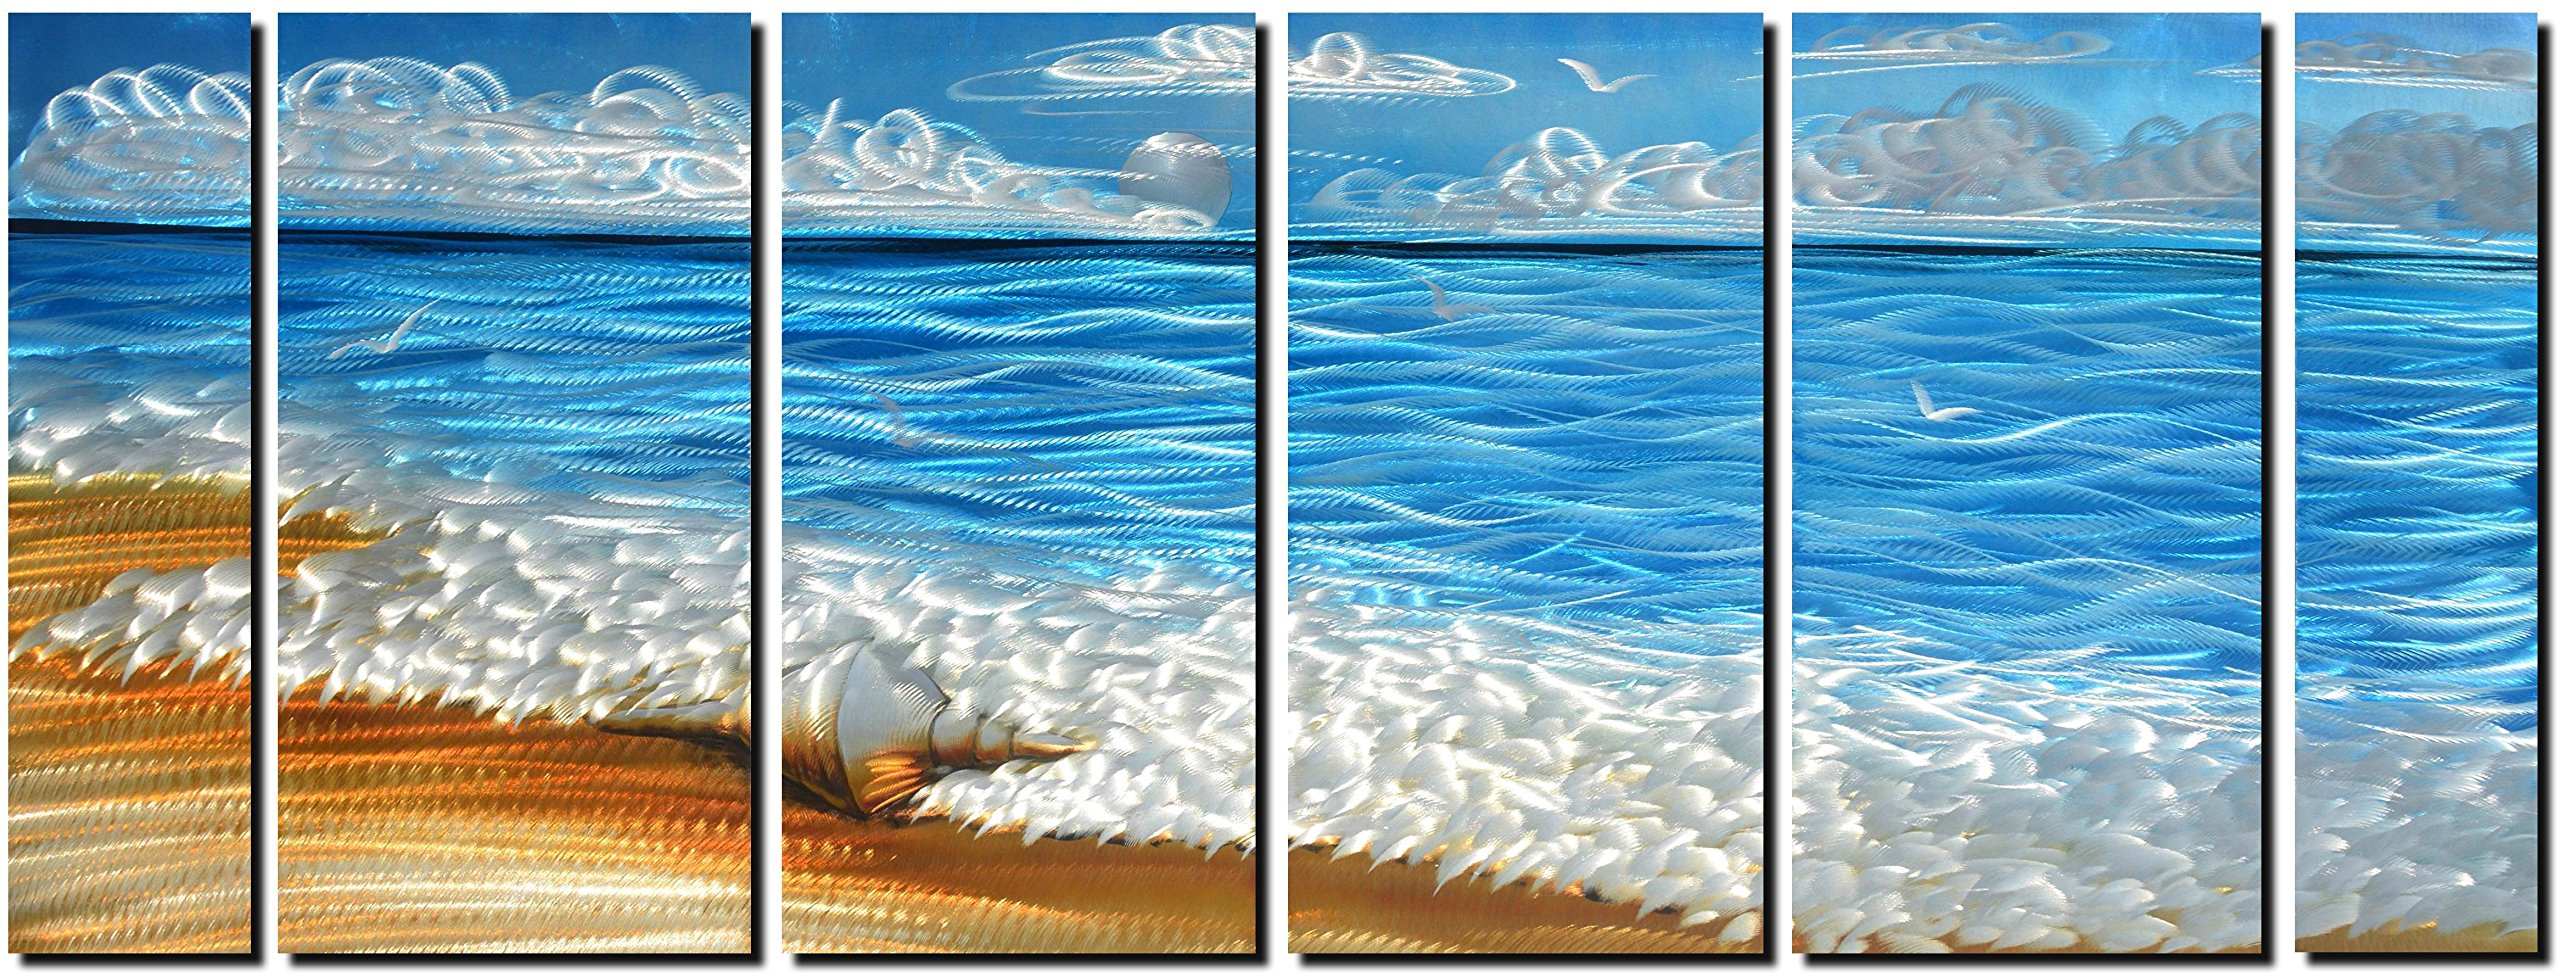 Handmade Metal Wall Art with Blue Ocean, Excellent Holiday Beach Design Wall Sculpture, 3D Metal Art for Home and Hotel Decor, Modern Landscape Set of 6-Panels Measures 24'' x 65''